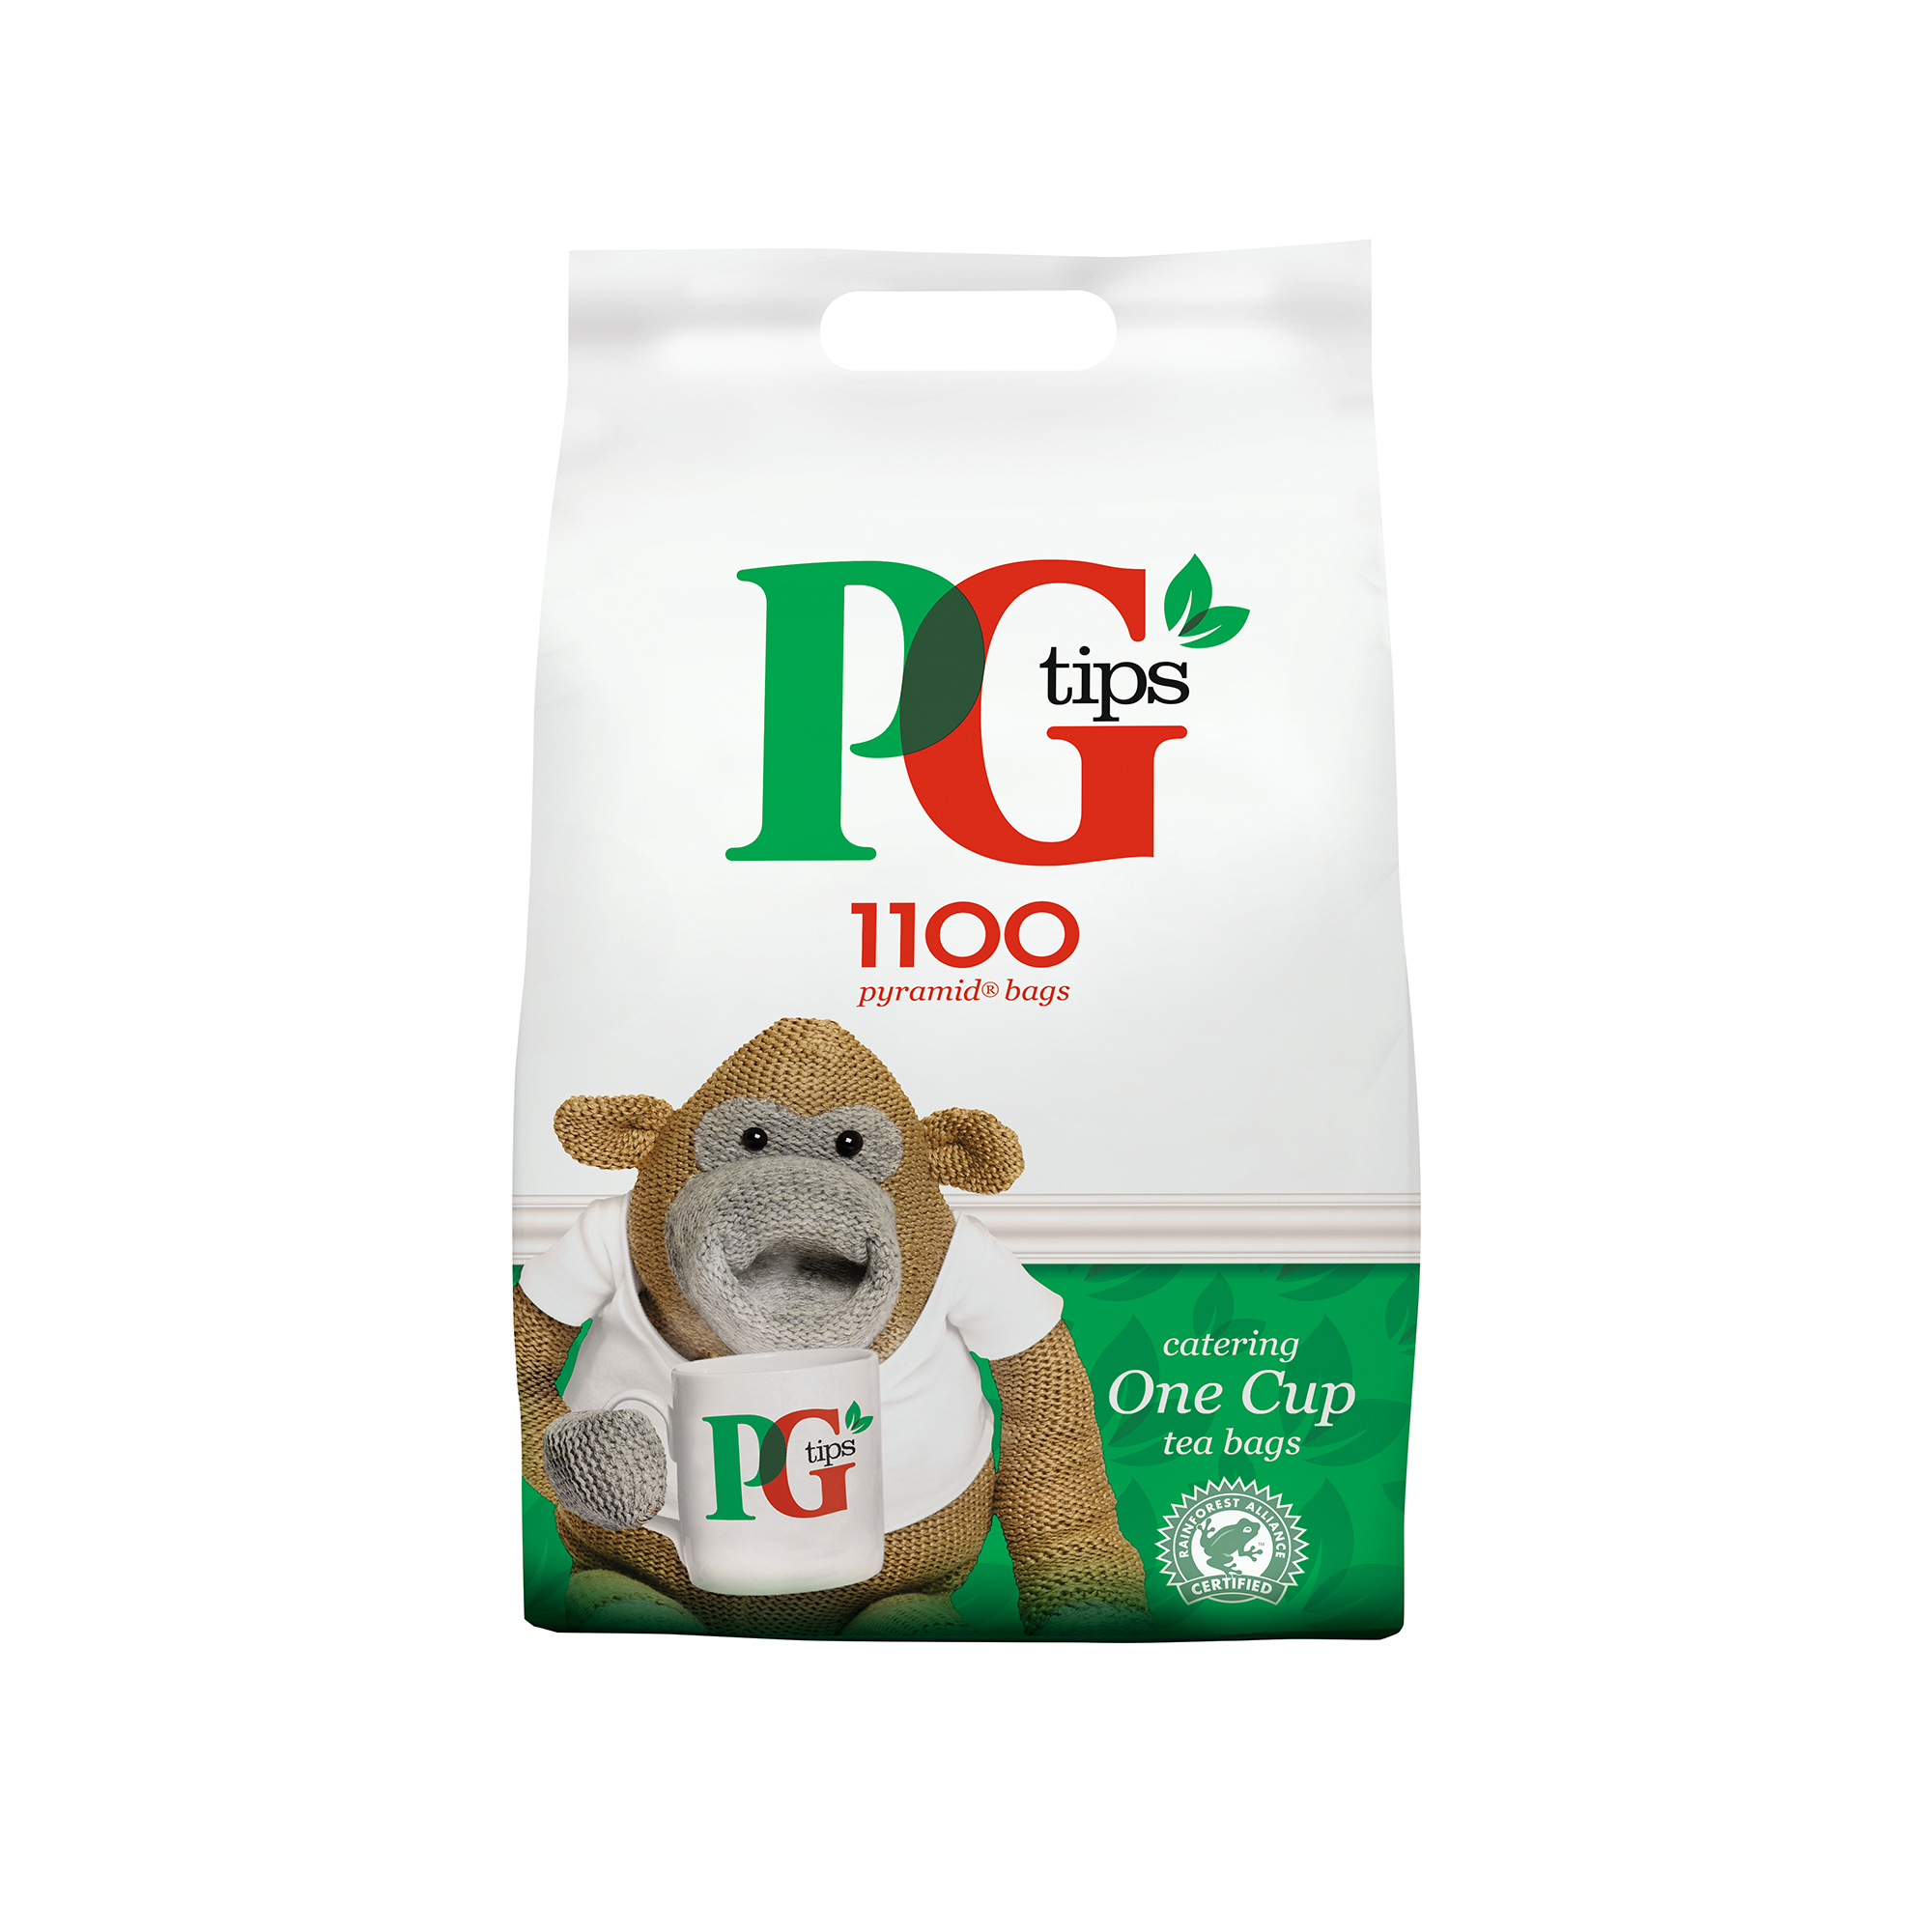 PG Tips Tea Pyramid 1 Cup Ref 67395661 [Pack 1100] [Buy 2 get 2 Free Elizabeth Shaw Biscuits] Oct-Dec 19